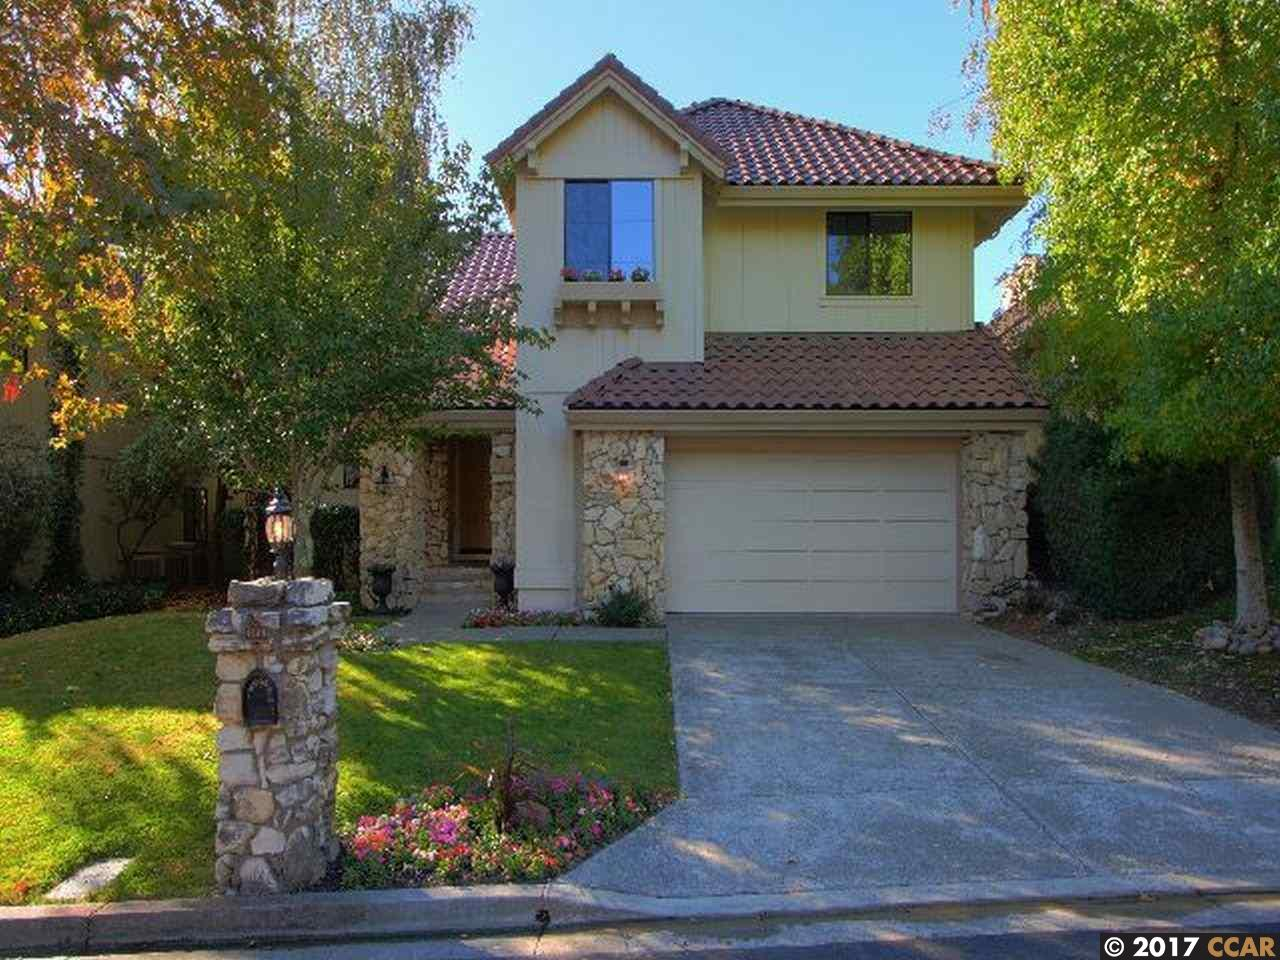 Single Family Home for Rent at 1243 Whispering Oaks Drive 1243 Whispering Oaks Drive Danville, California 94506 United States